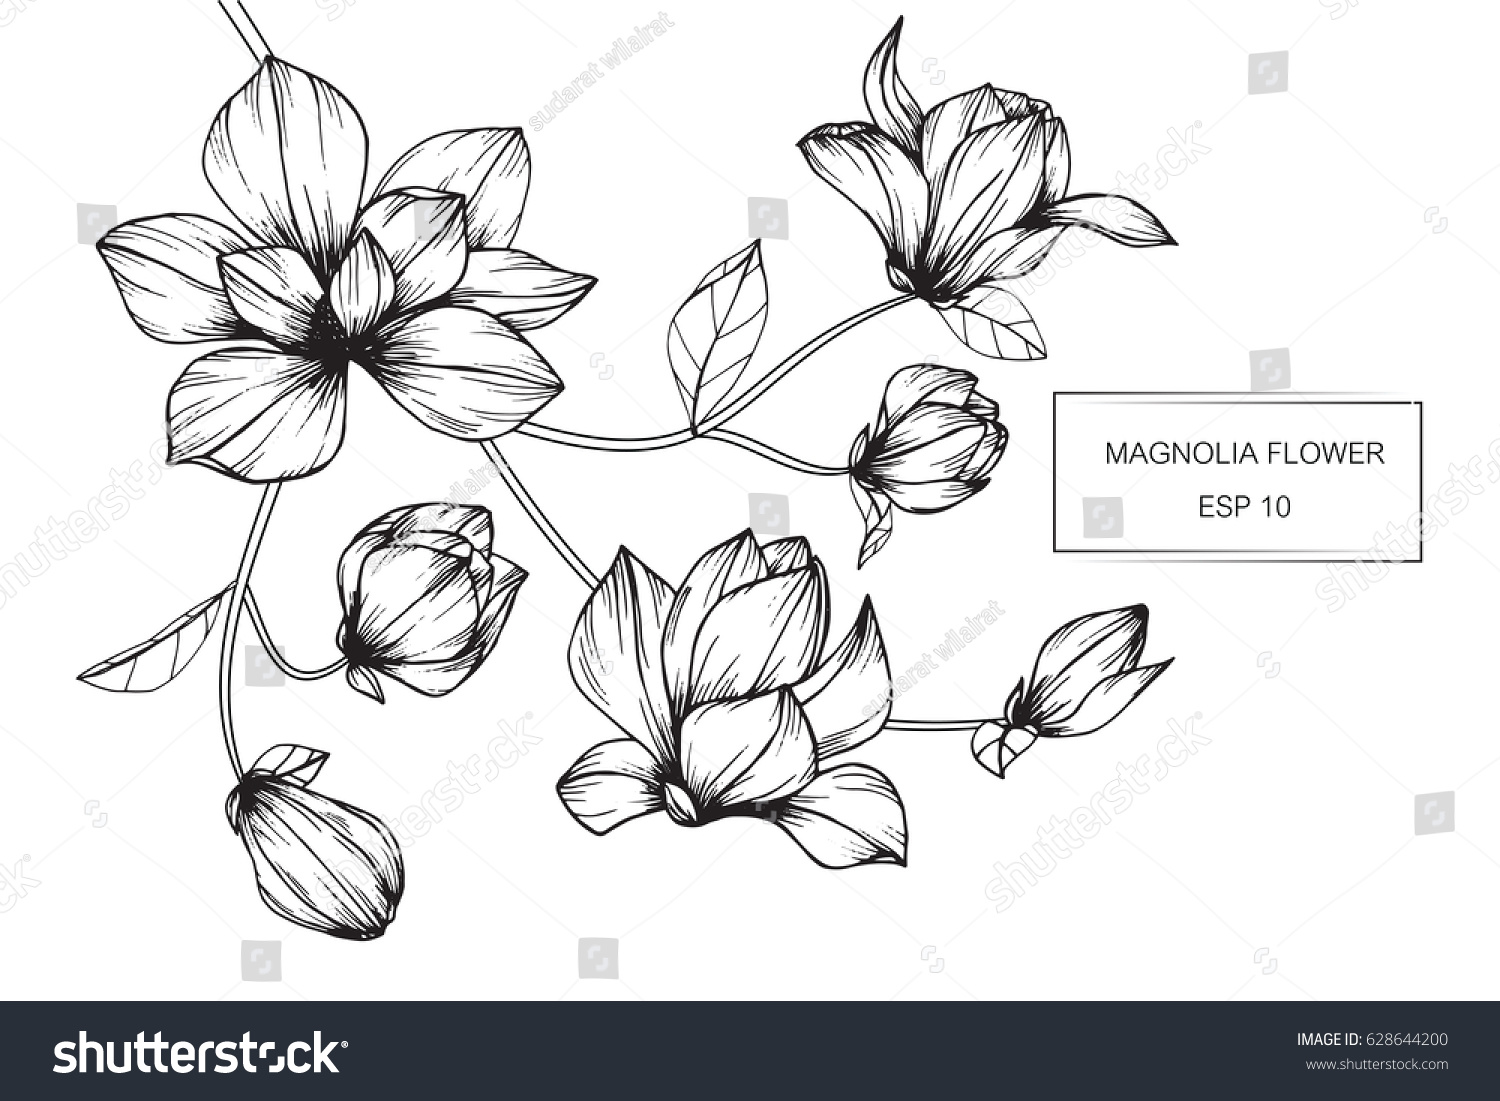 Magnolia flowers drawing and sketch with line-art on white backgrounds. #628644200